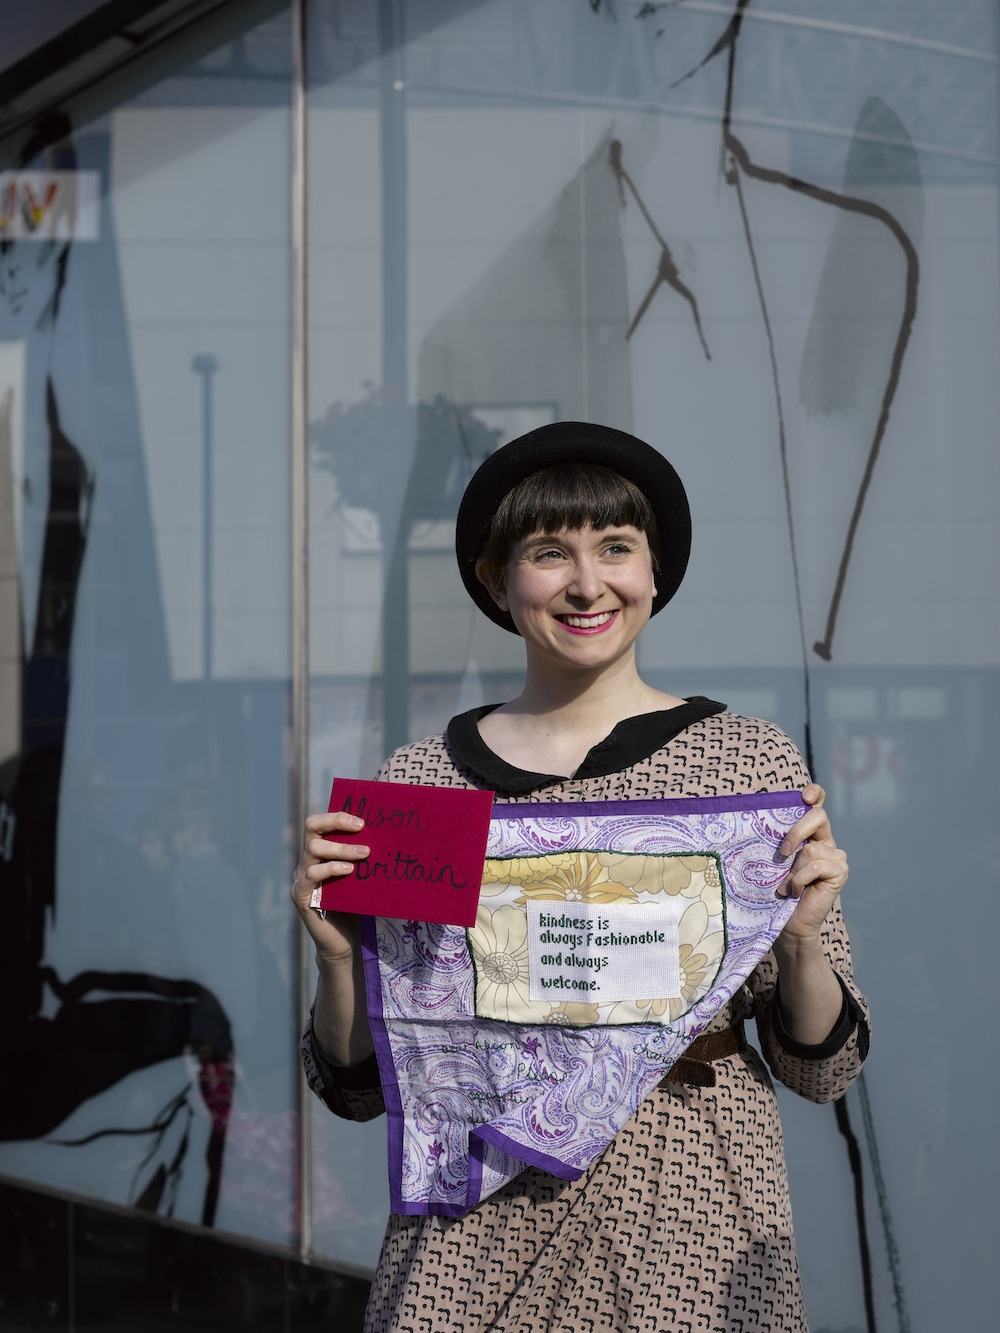 Gemma outside M&S Islington with her completed hanky for M&S Board Member Alison Brittain. Photo by Polly Braden